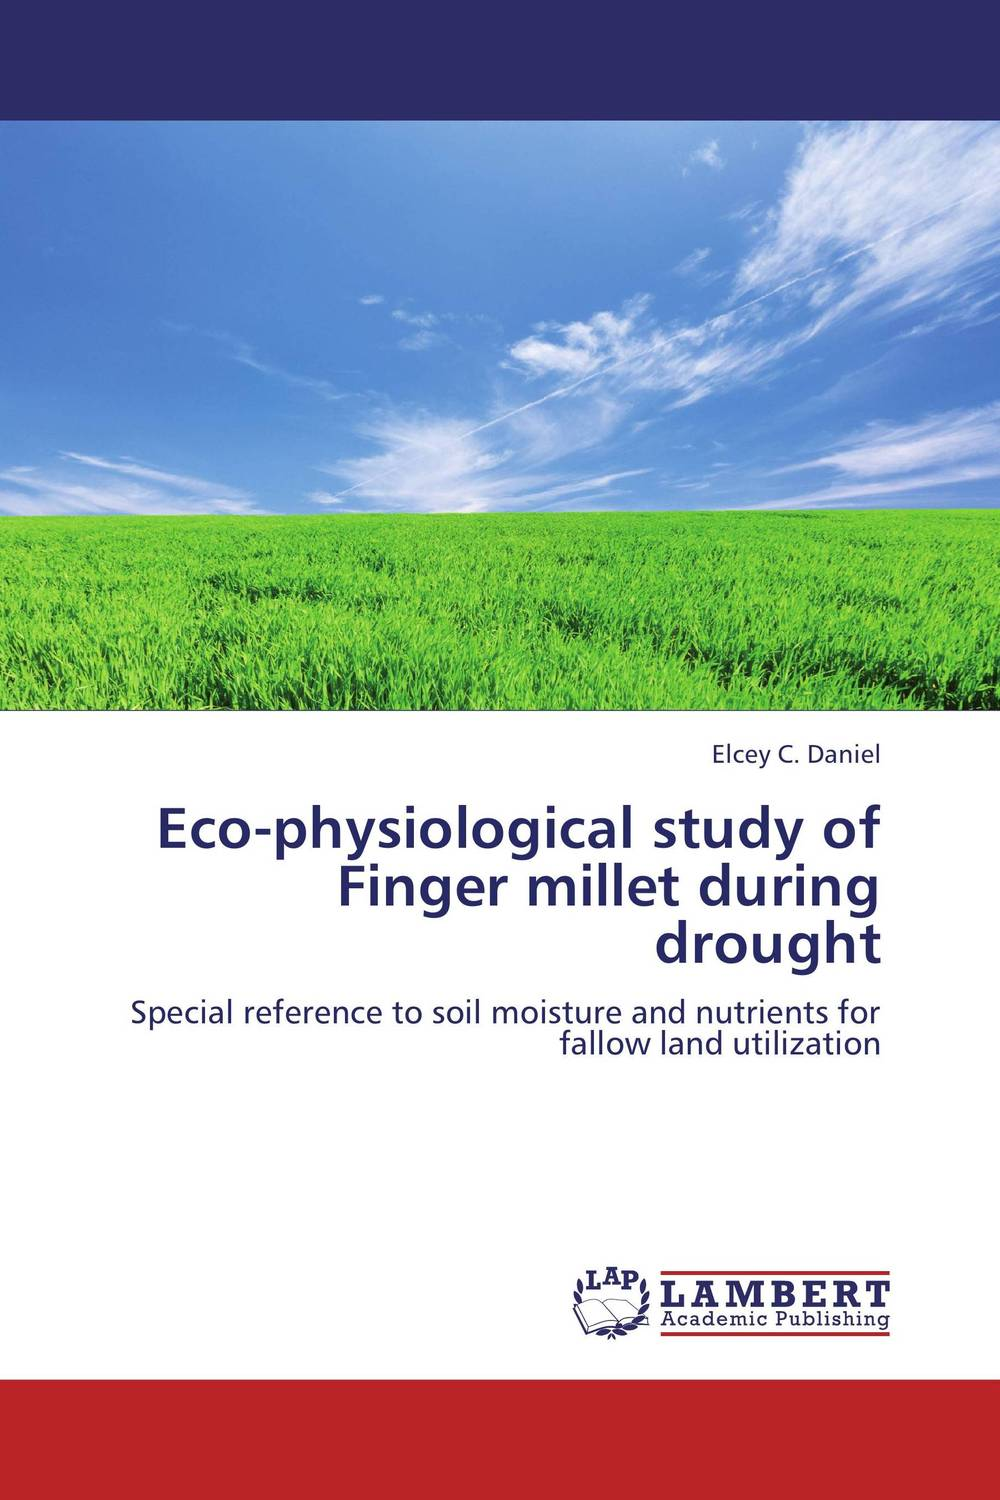 Eco-physiological study of Finger millet during drought ramwant gupta and munna singh recent physiological advances of finger millet